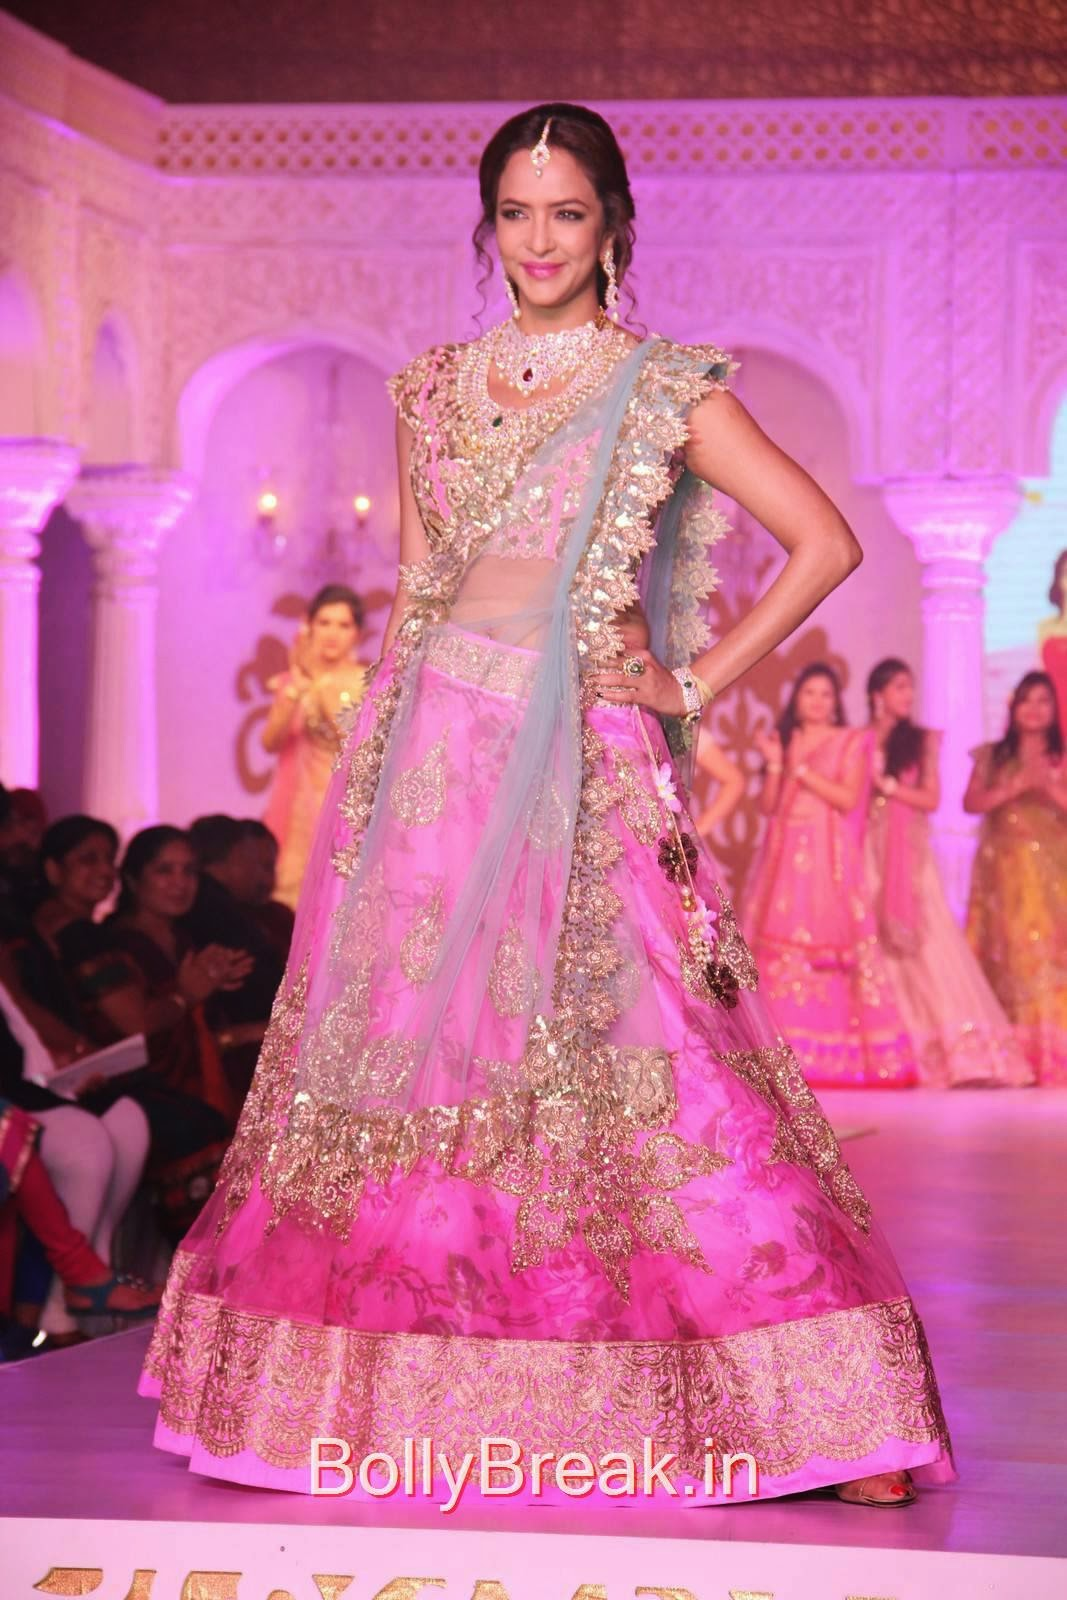 Manchu Lakshmi Photos At Princess on the Ramp Event, Manchu Lakshmi Pics in Bridal Lehenga Choli